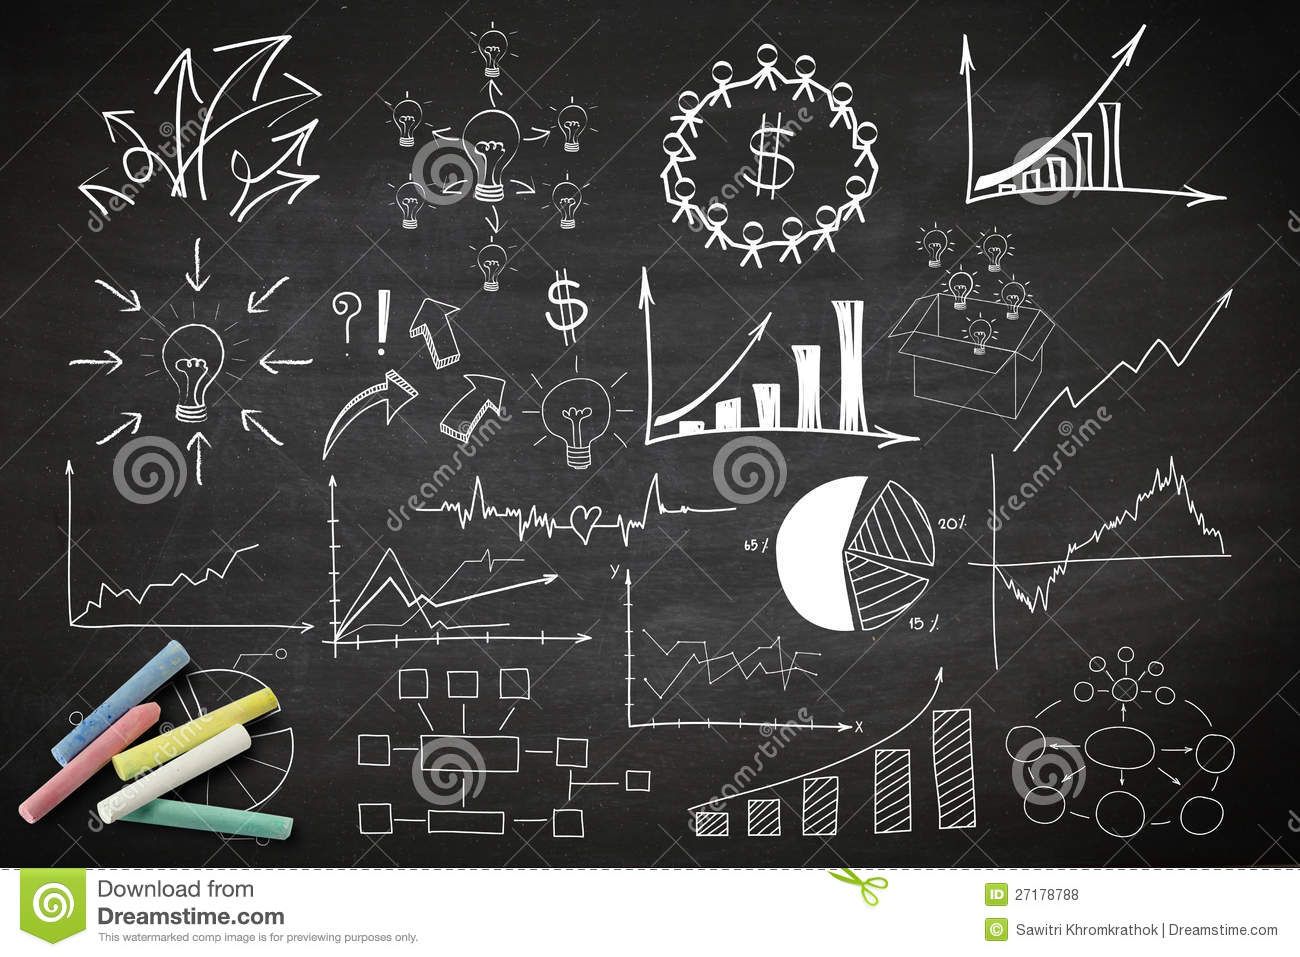 Writing business idea concept stock illustration